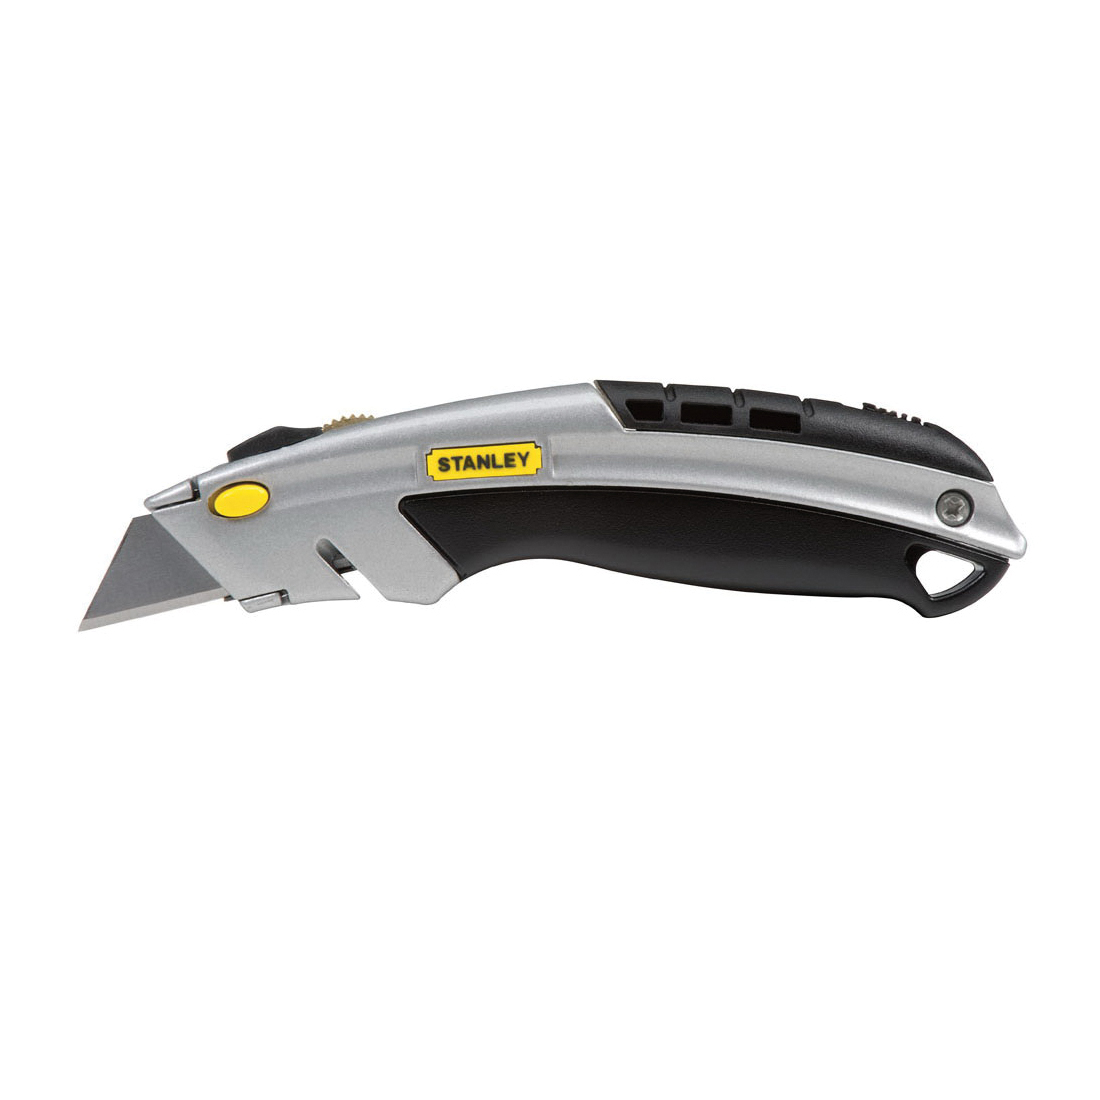 Stanley® InstantChange™ 10-788 General Purpose Heavy Duty Utility Knife, 3 in W Retractable Blade, 3 Blades Included, High Carbon Steel Blade, 8-1/2 in OAL